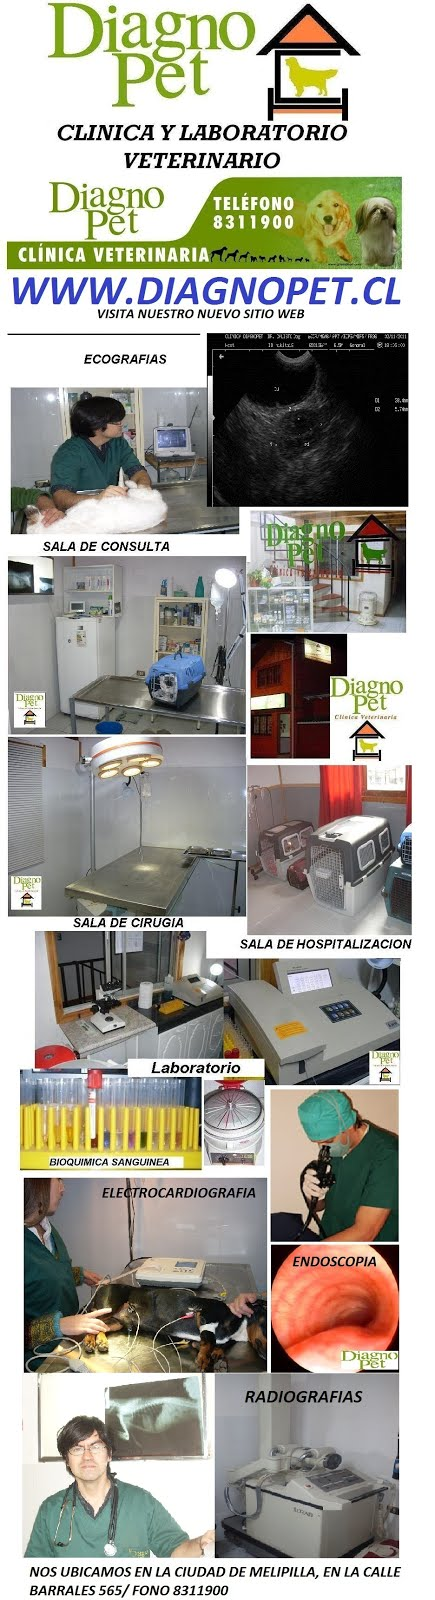 CLINICA Y LABORATORIO VETERINARIO DIAGNOPET  de Melipilla